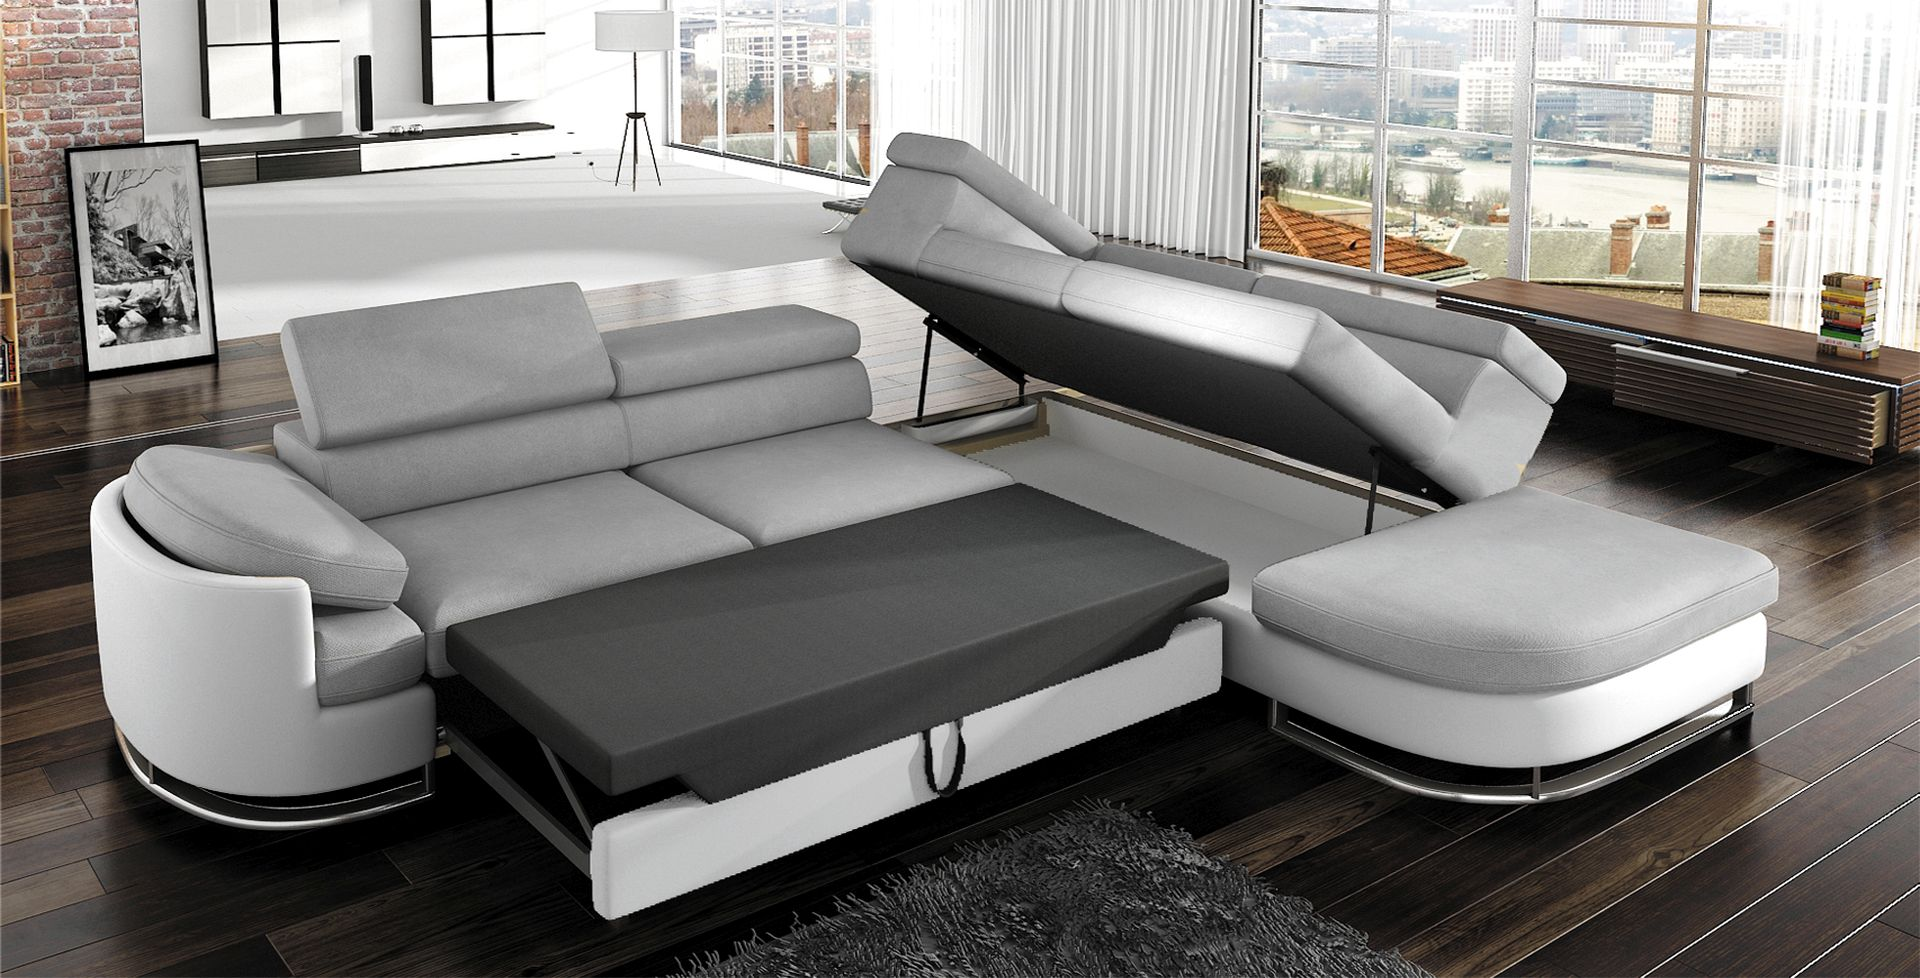 sofa schlafsofa designer sofa mit bettfunktion bettkasten ecksofa couch neu ebay. Black Bedroom Furniture Sets. Home Design Ideas